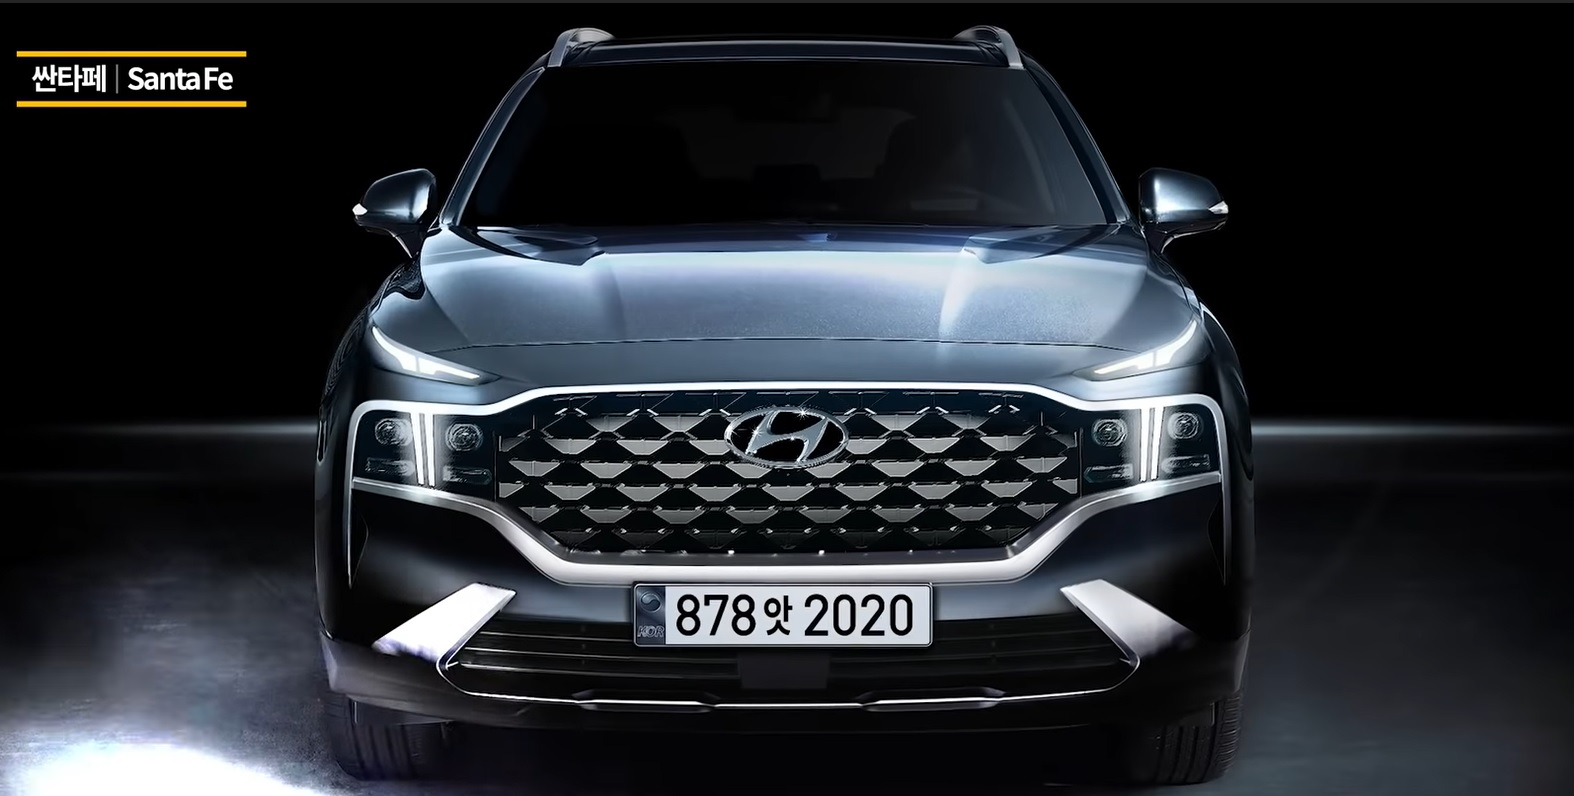 Hyundai Santa Fe Rendering Based on Official Teaser